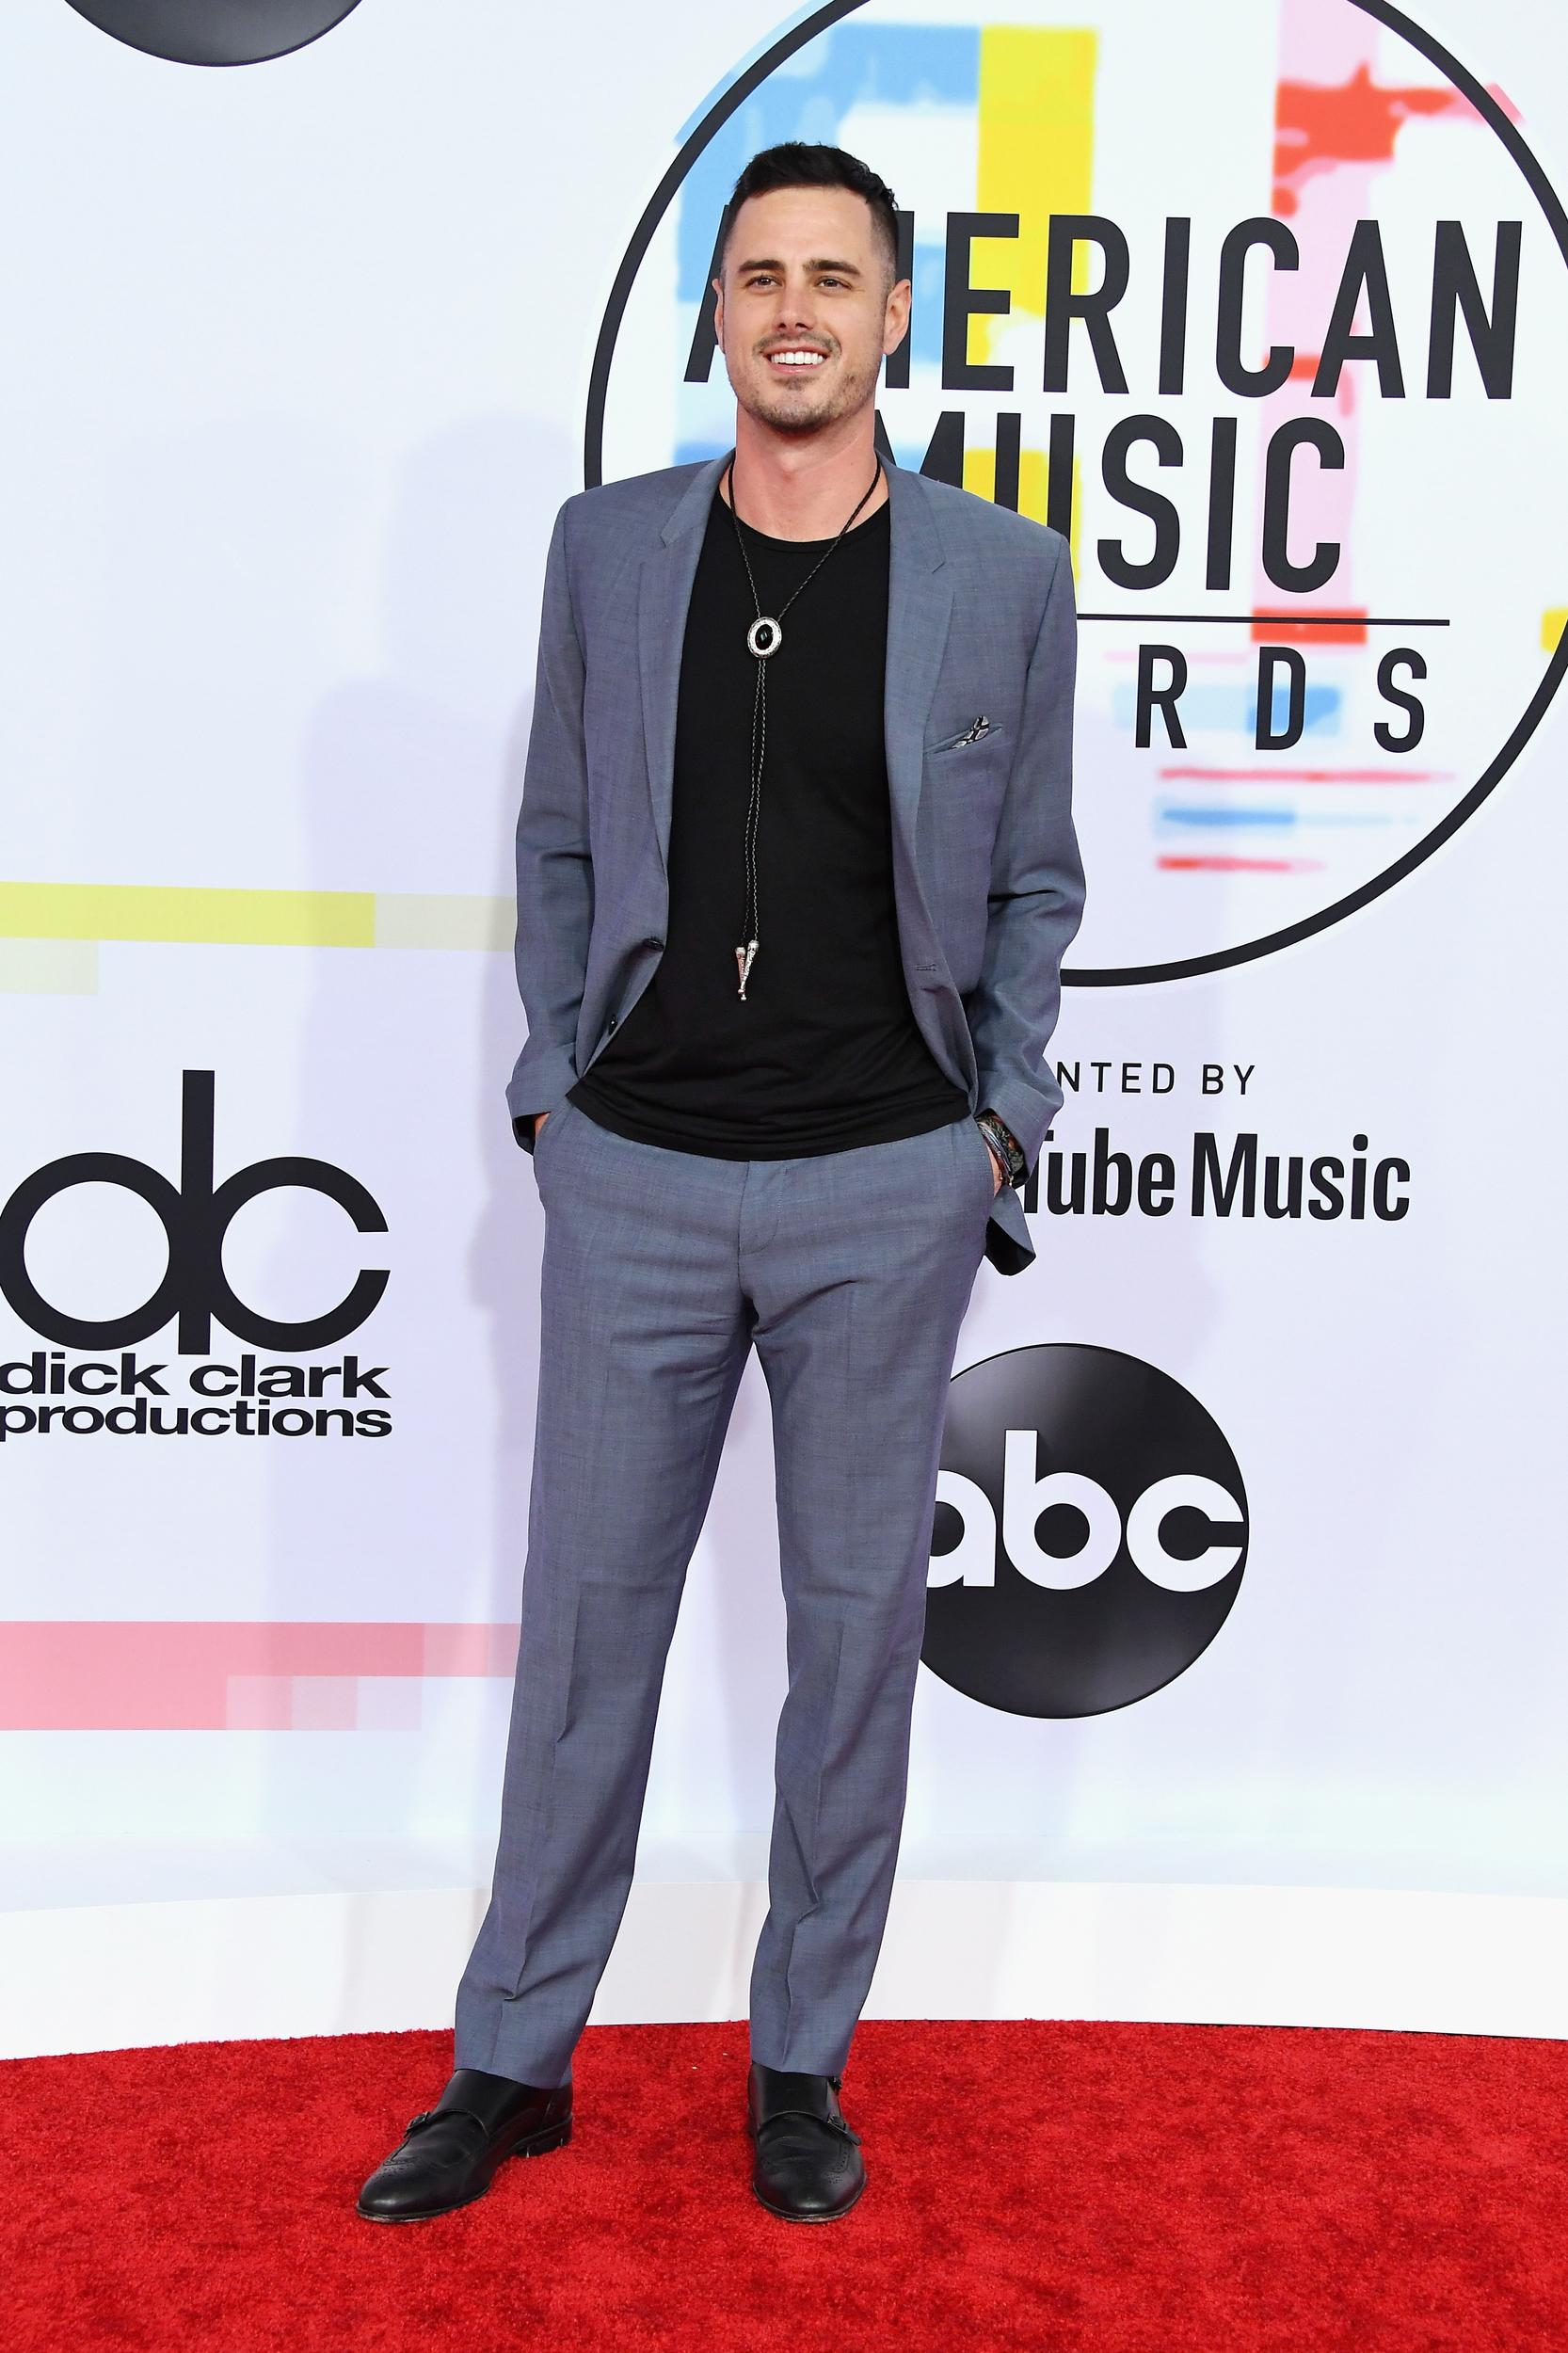 LOS ANGELES, CA - OCTOBER 09:  Benjamin Higgins attends the 2018 American Music Awards at Microsoft Theater on October 9, 2018 in Los Angeles, California.  (Photo by Steve Granitz/WireImage)